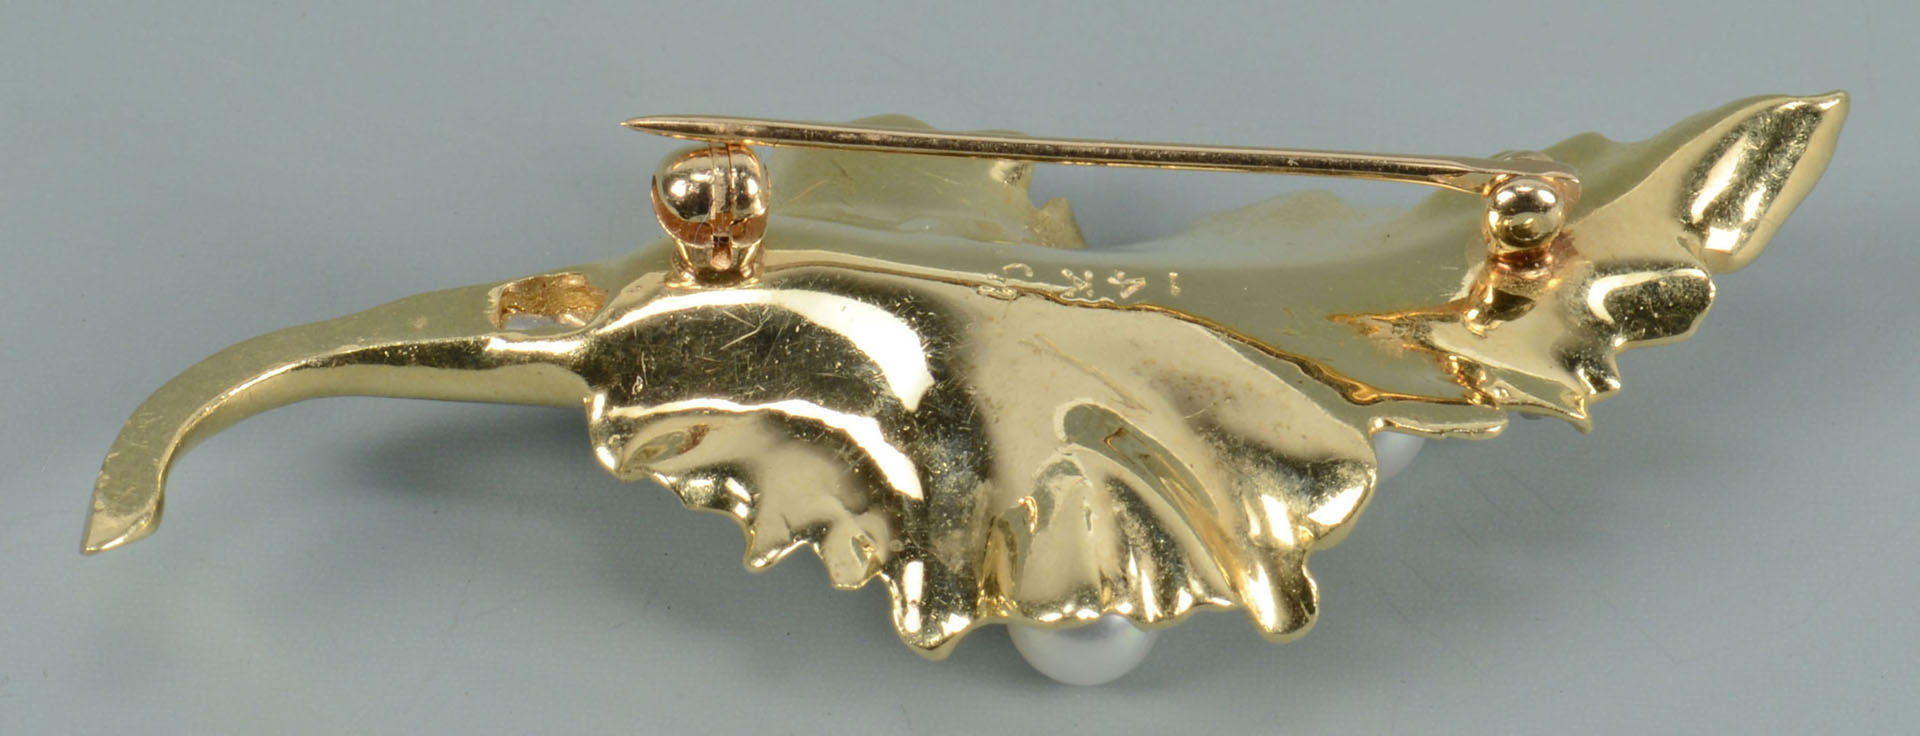 Lot 490: 14k Leaf Pin w/ Sapphires and Pearls